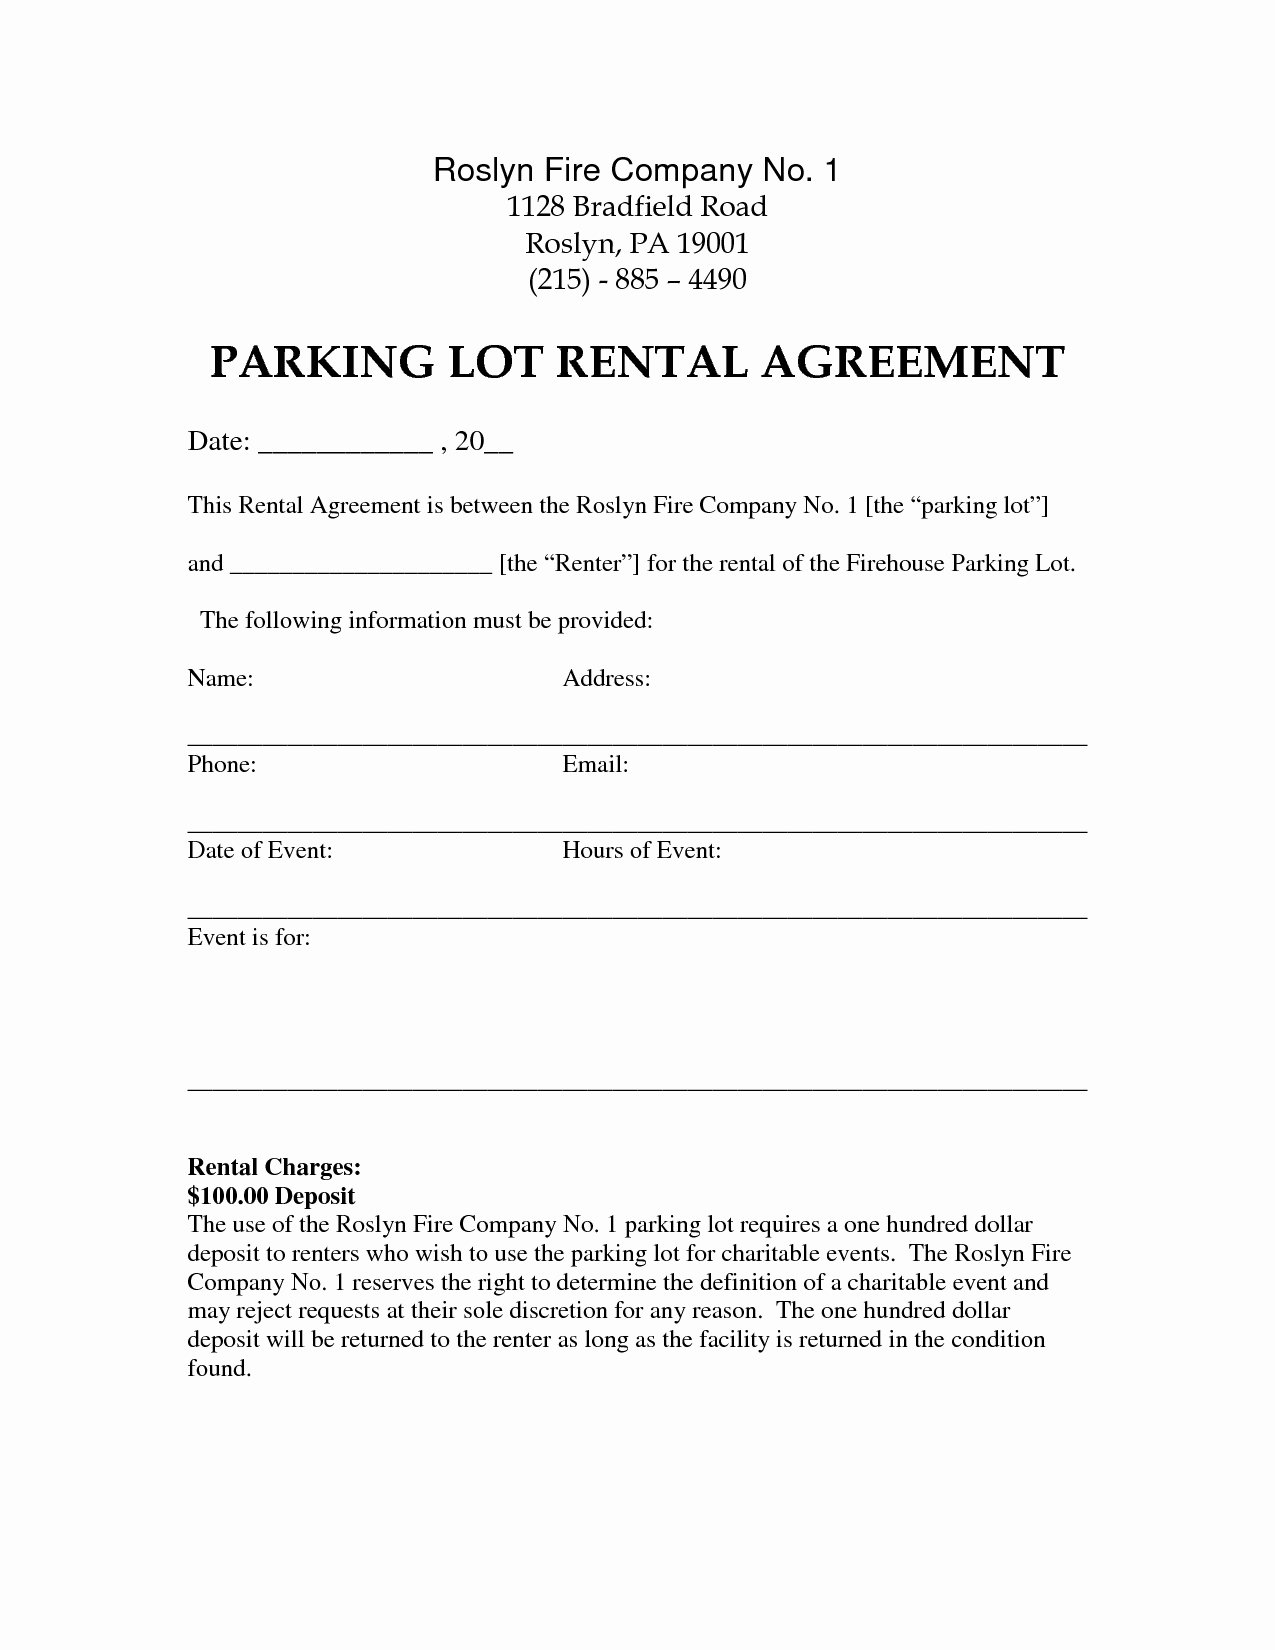 Parking Spot Lease Agreement Lovely 50 Simple Parking Lot Lease Agreement Template Yo W